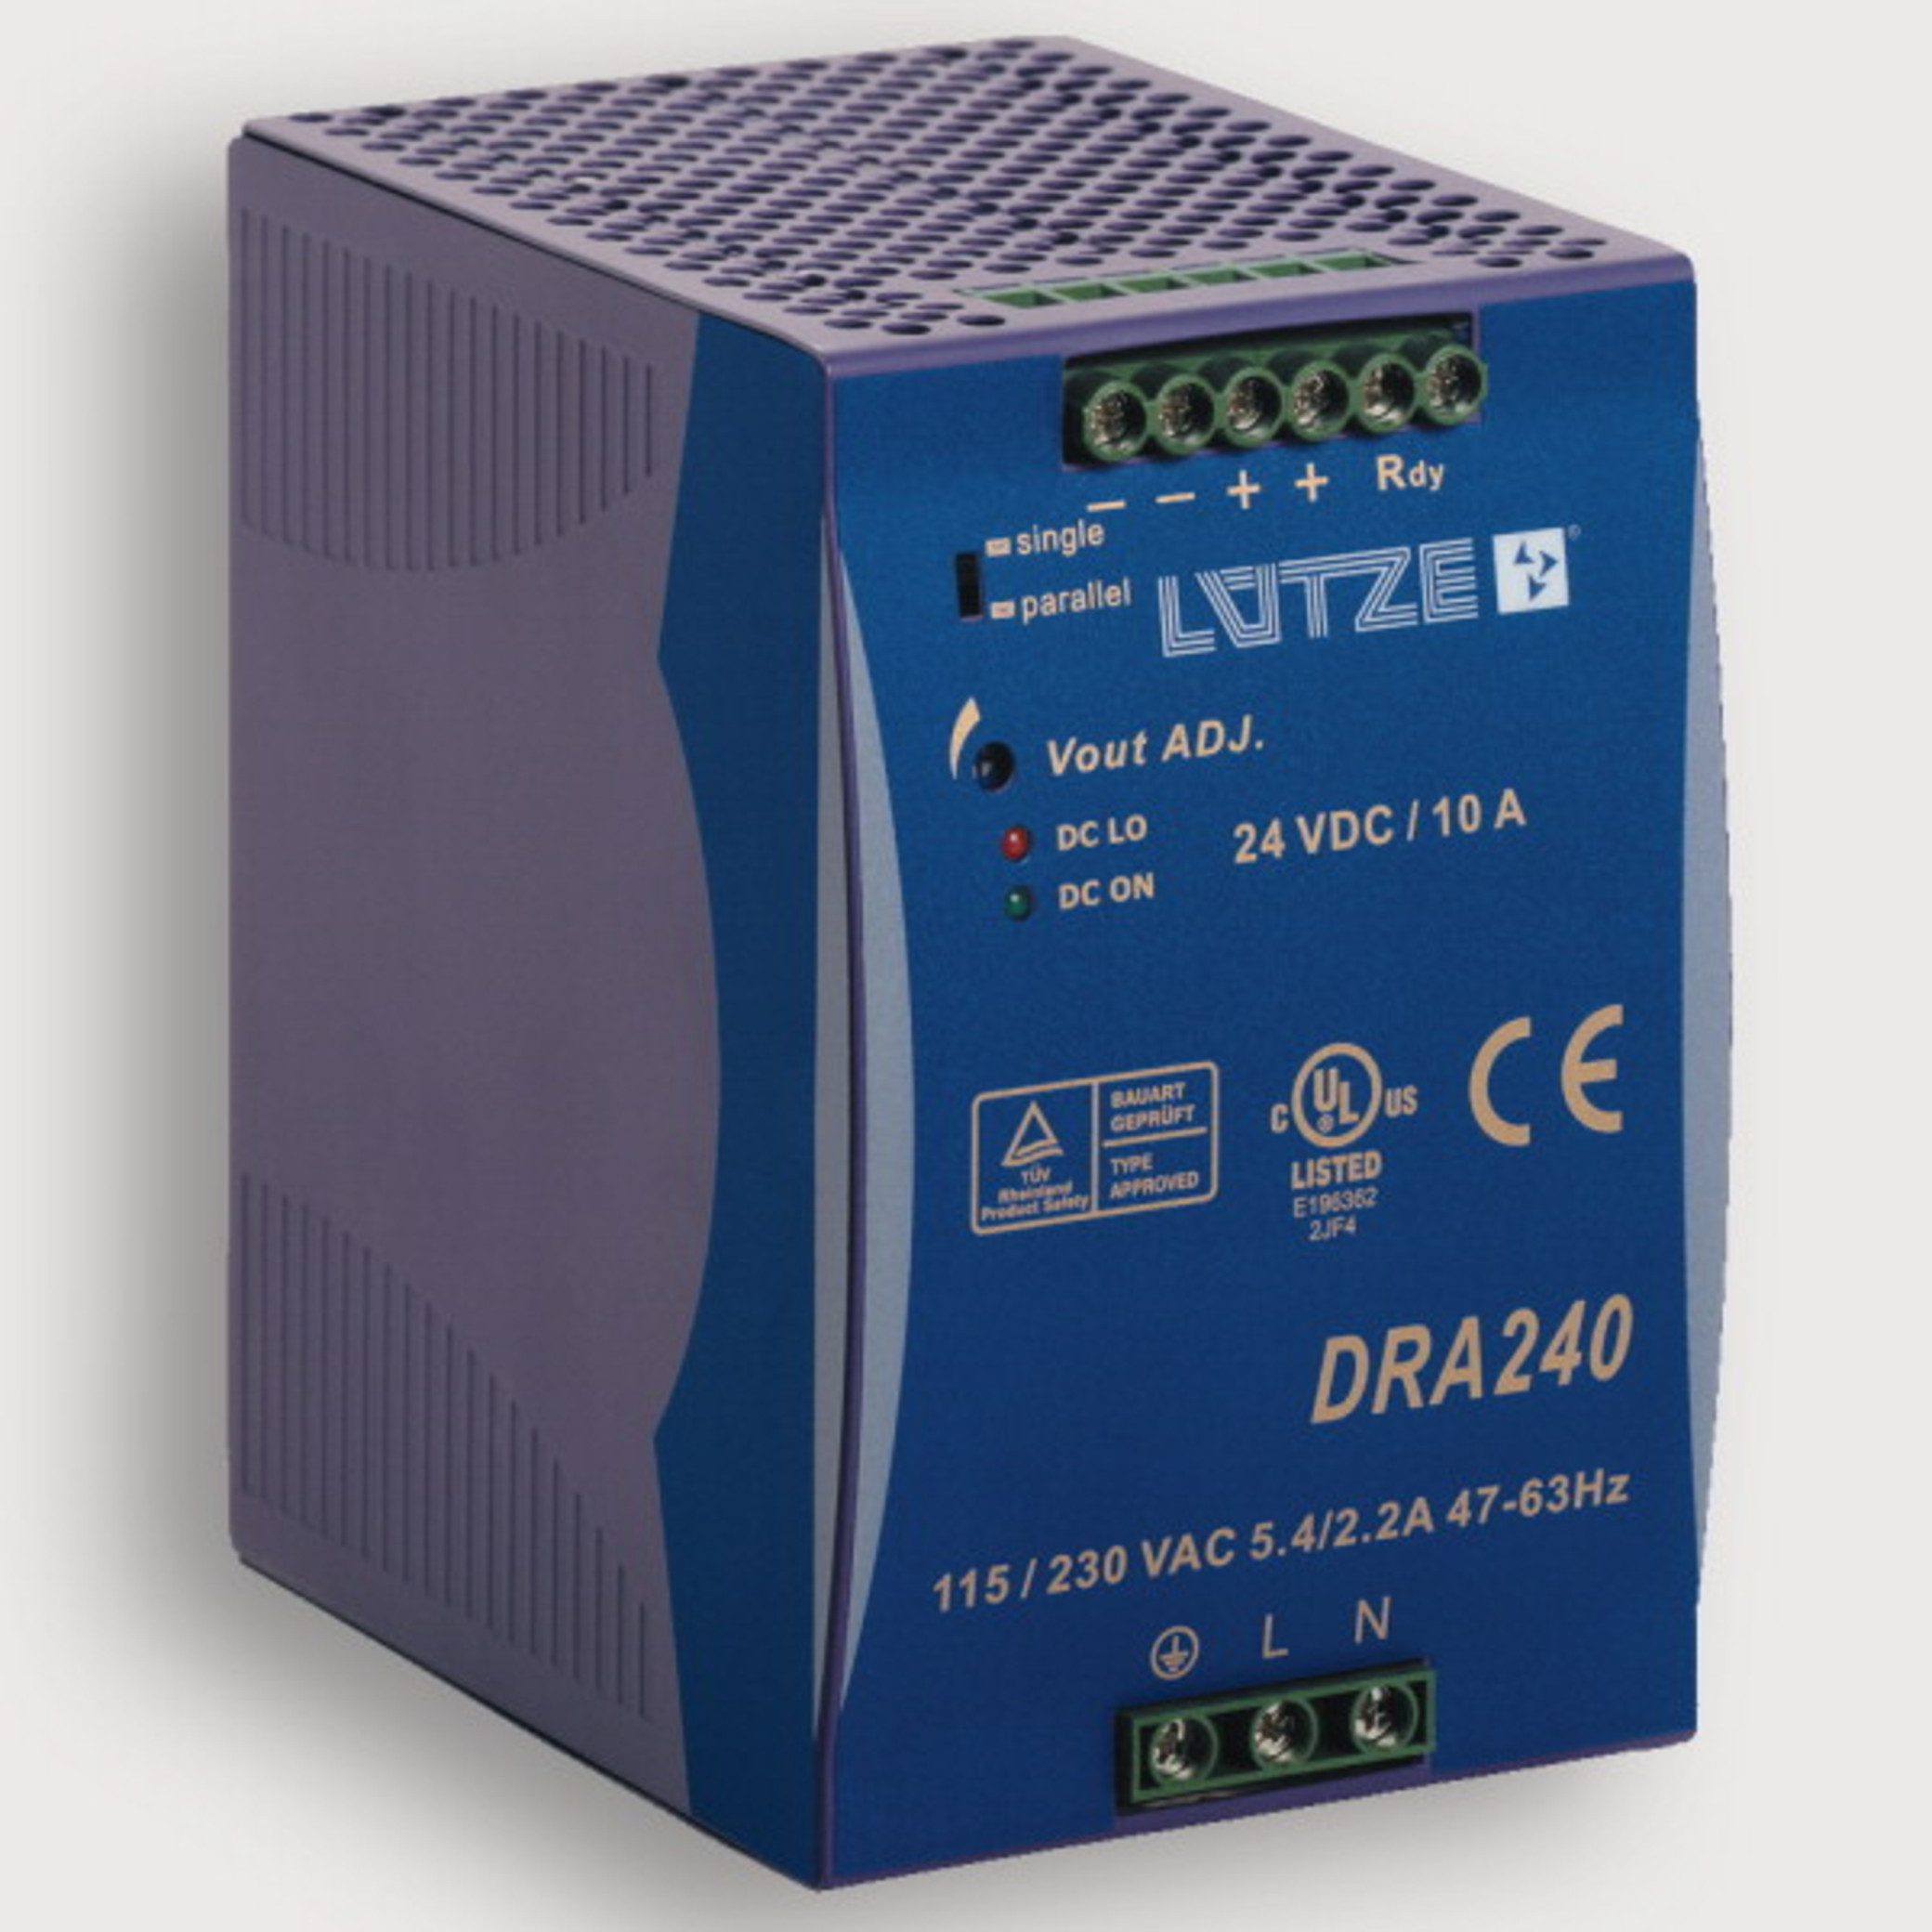 722781 - regulated, 240 W